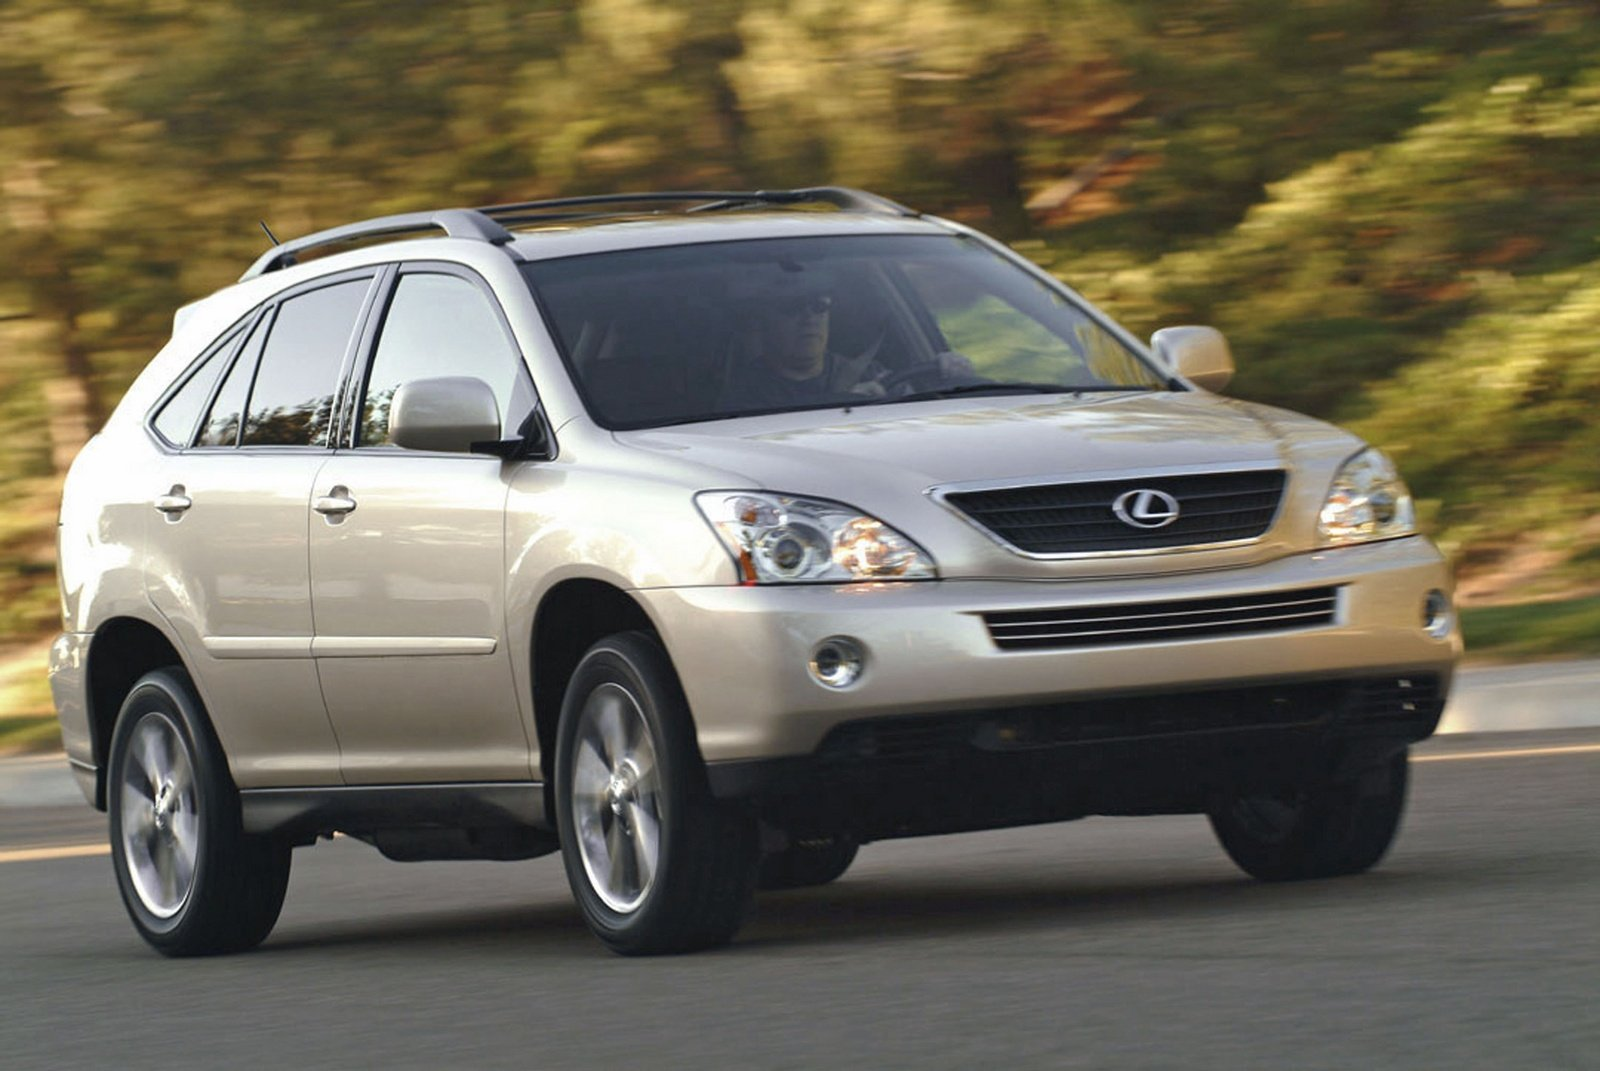 2007 lexus rx 400h picture 101511 car review top speed. Black Bedroom Furniture Sets. Home Design Ideas